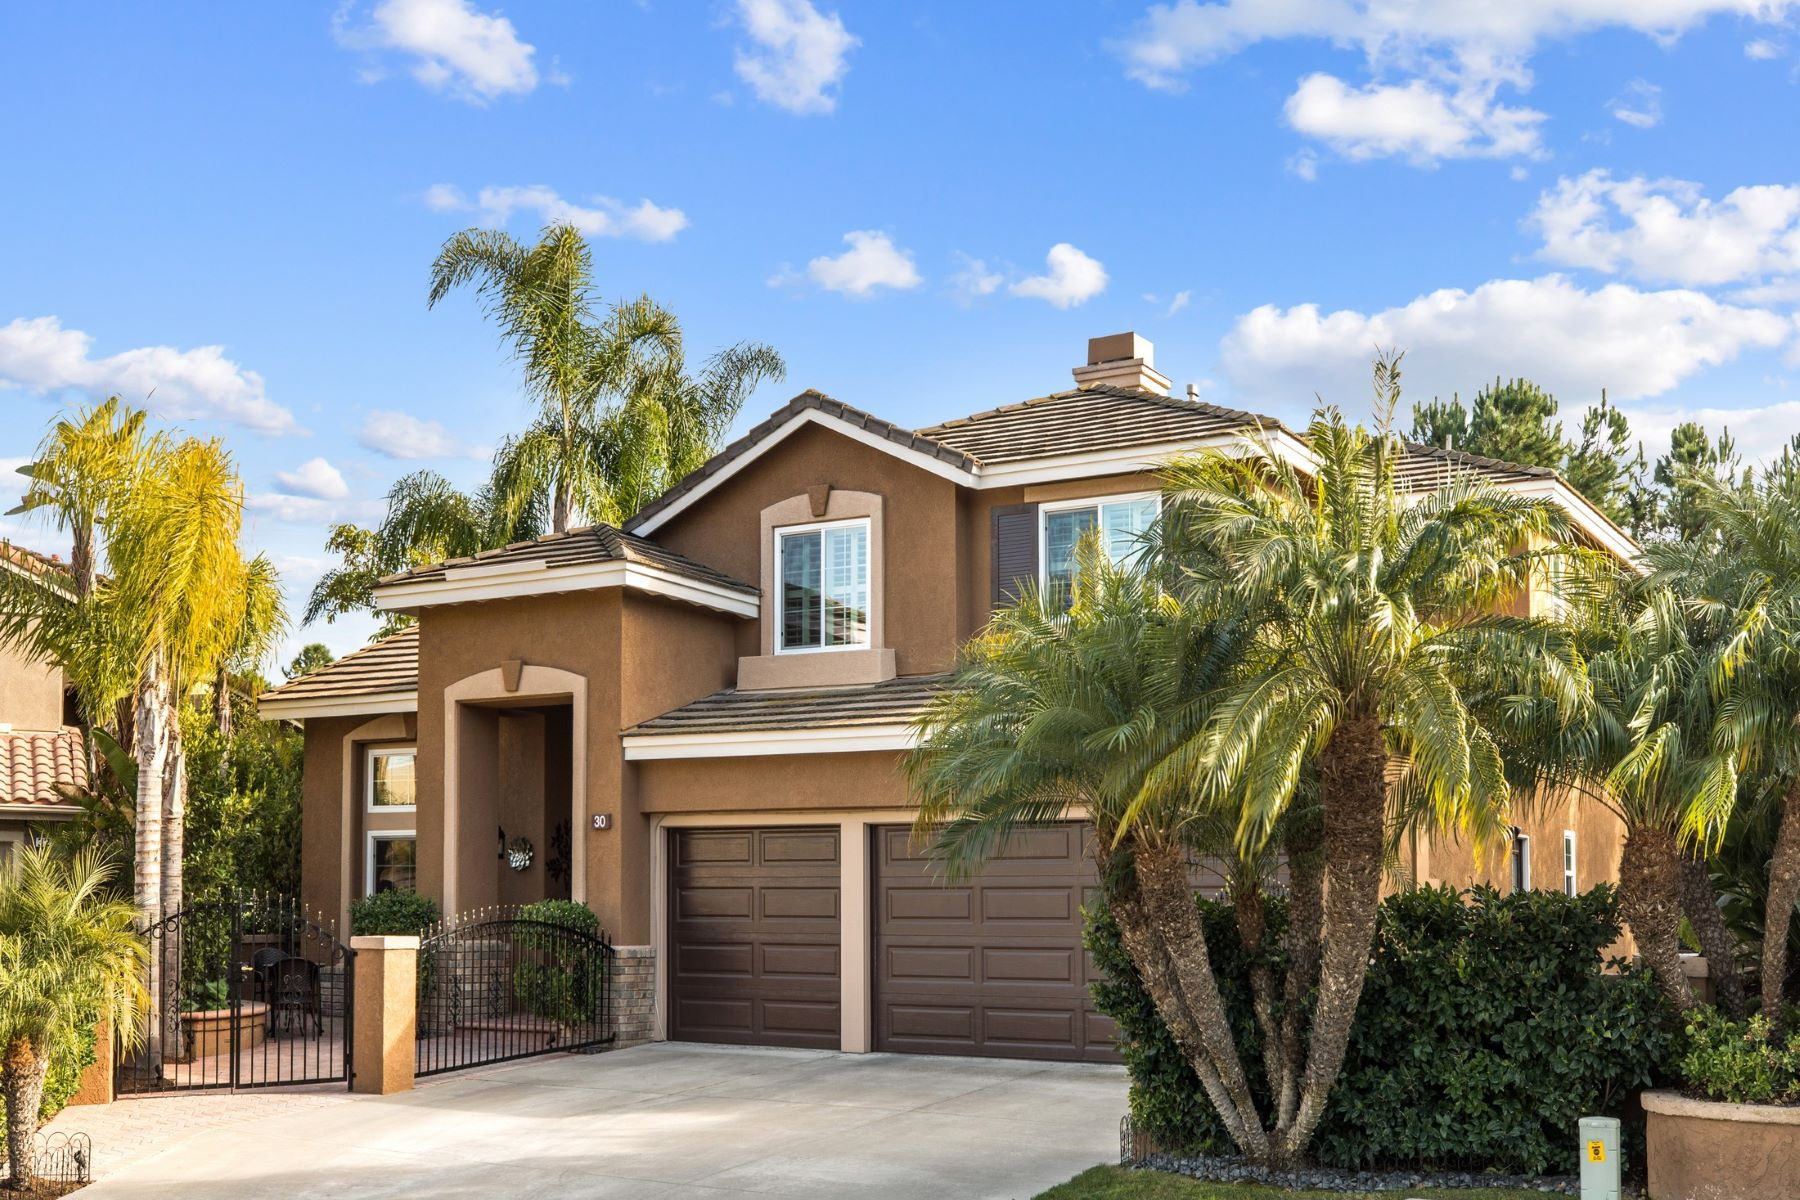 Single Family Homes for Active at 30 Blue Jay Drive, Aliso Viejo 30 Blue Jay Drive Aliso Viejo, California 92656 United States